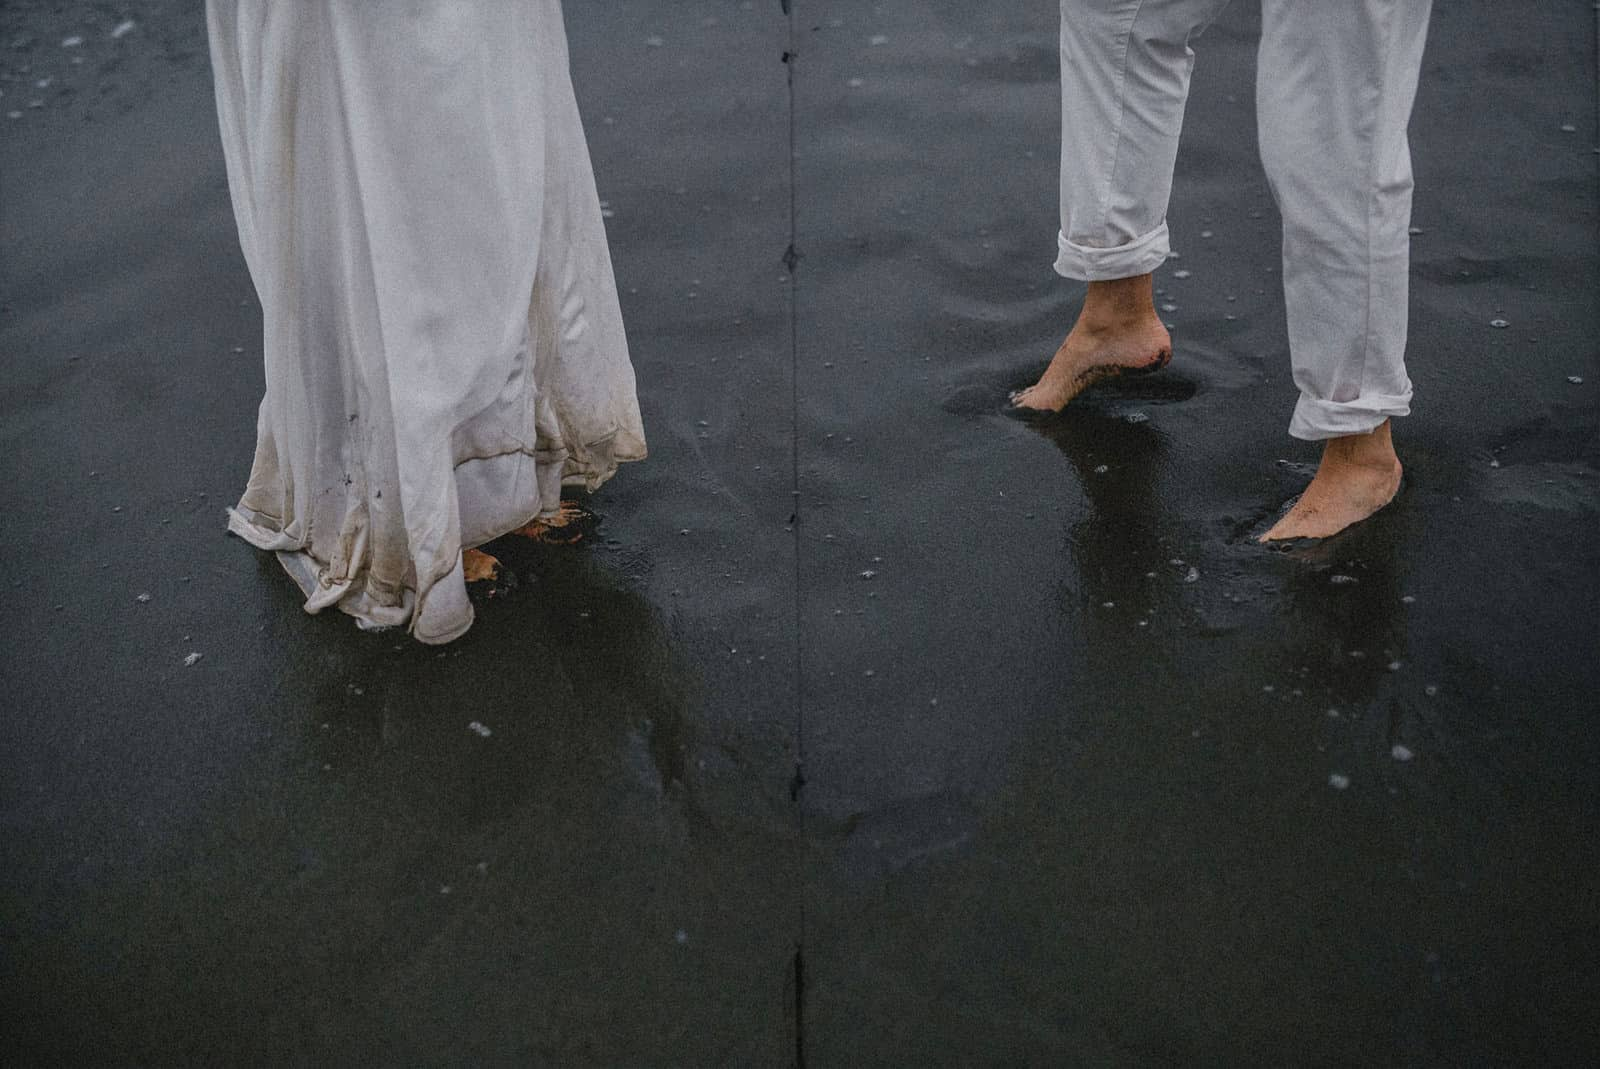 bride and groom wetting the feet and the dress in the water